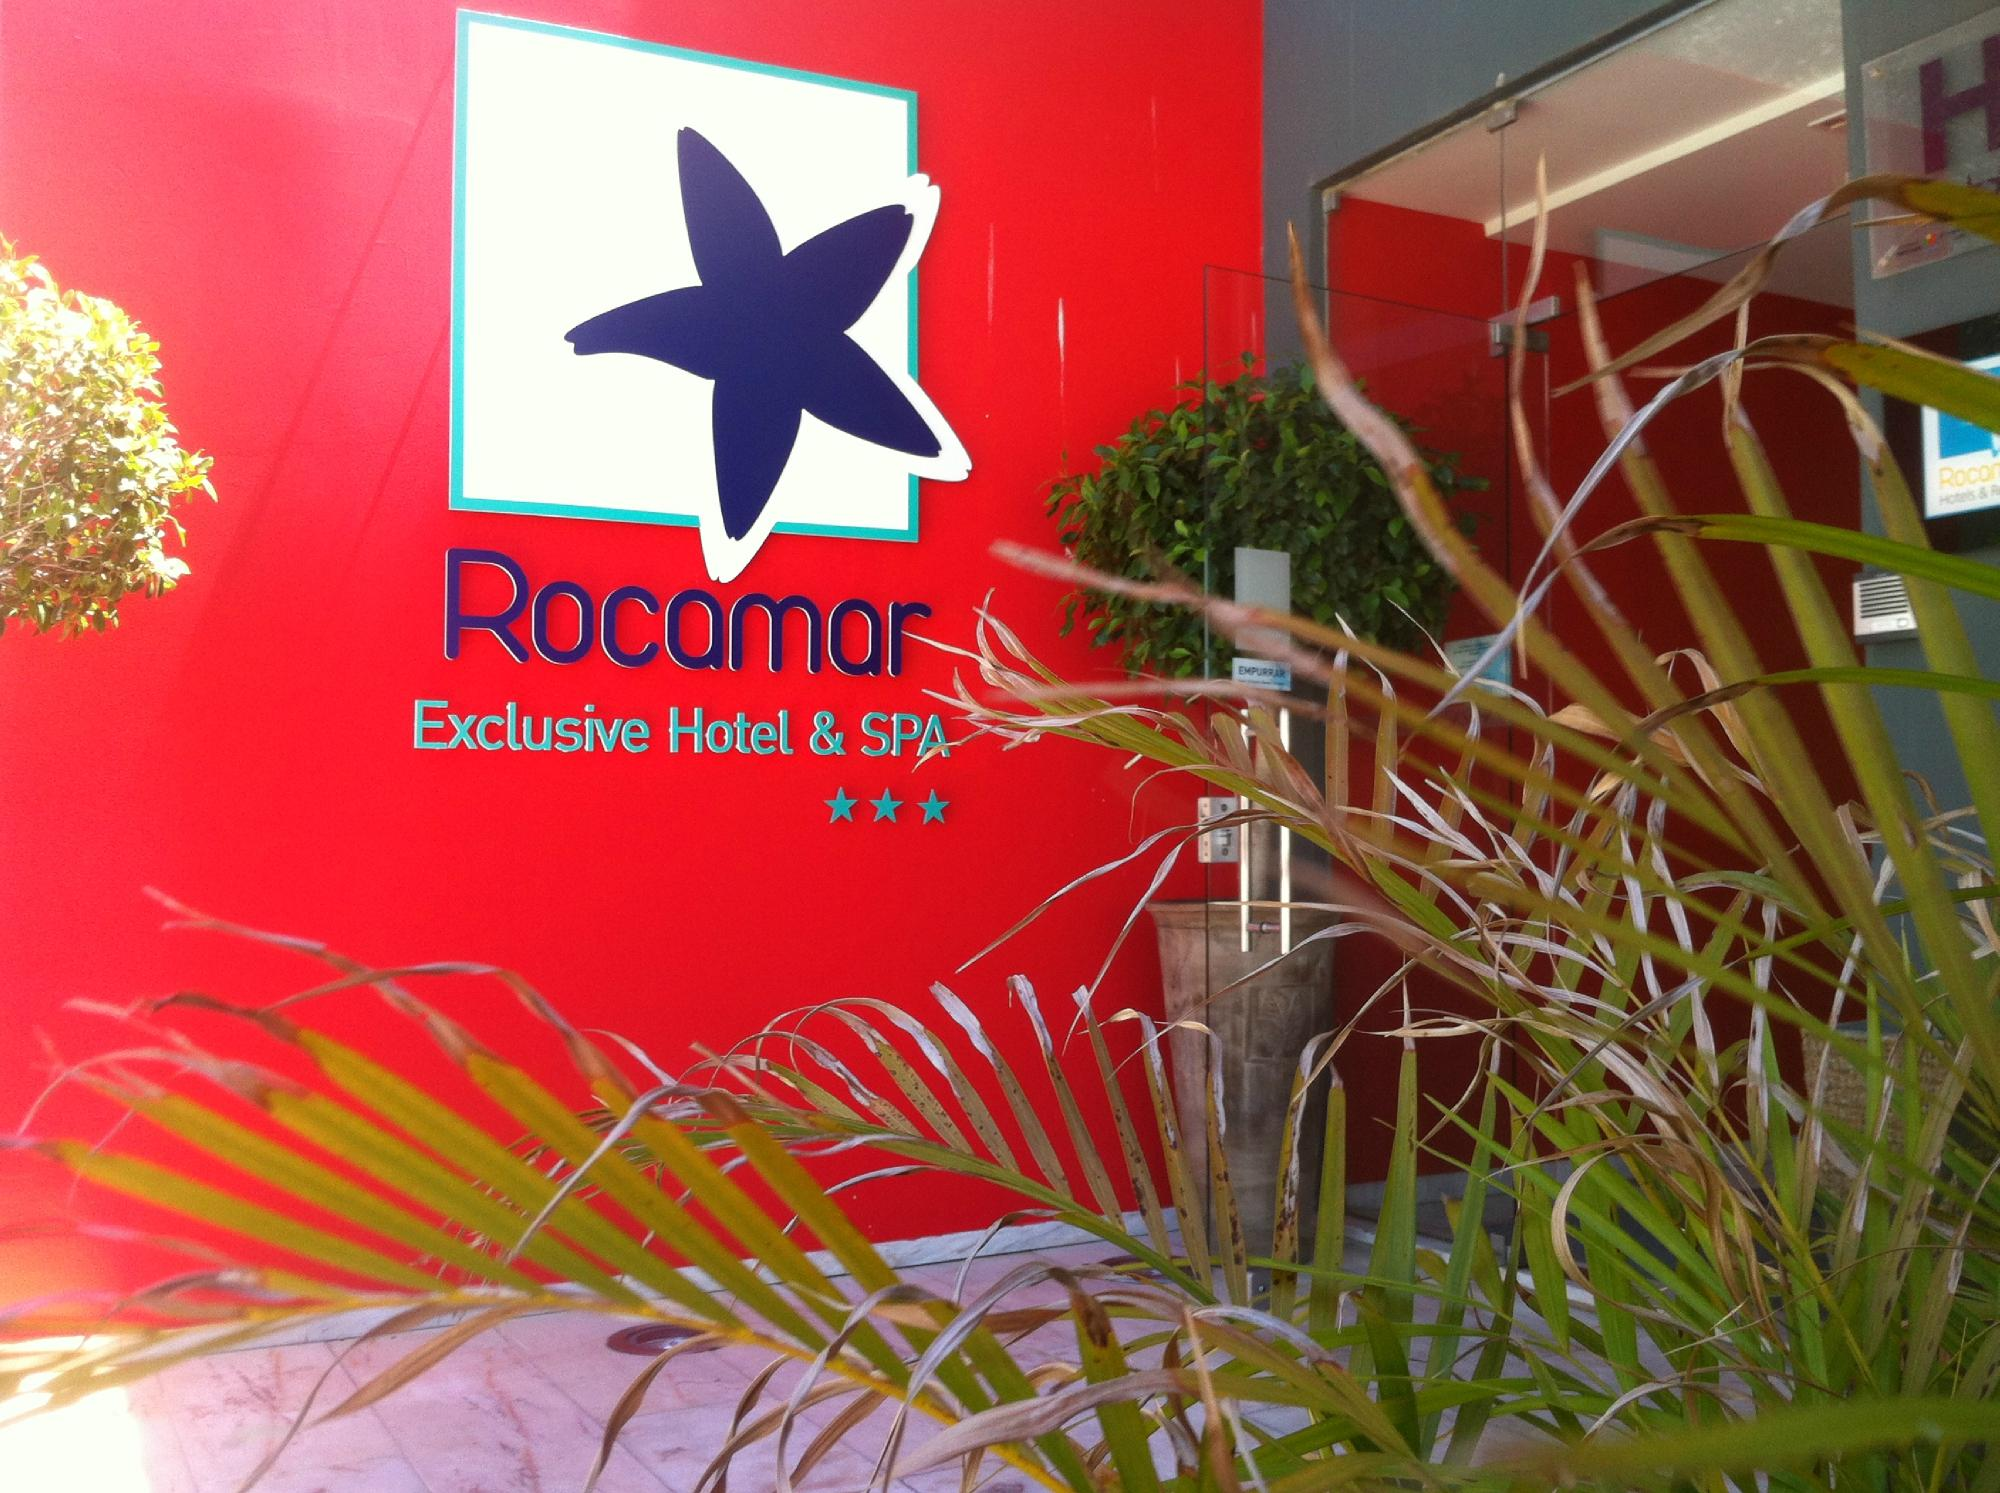 Rocamar Exclusive Hotel & Spa